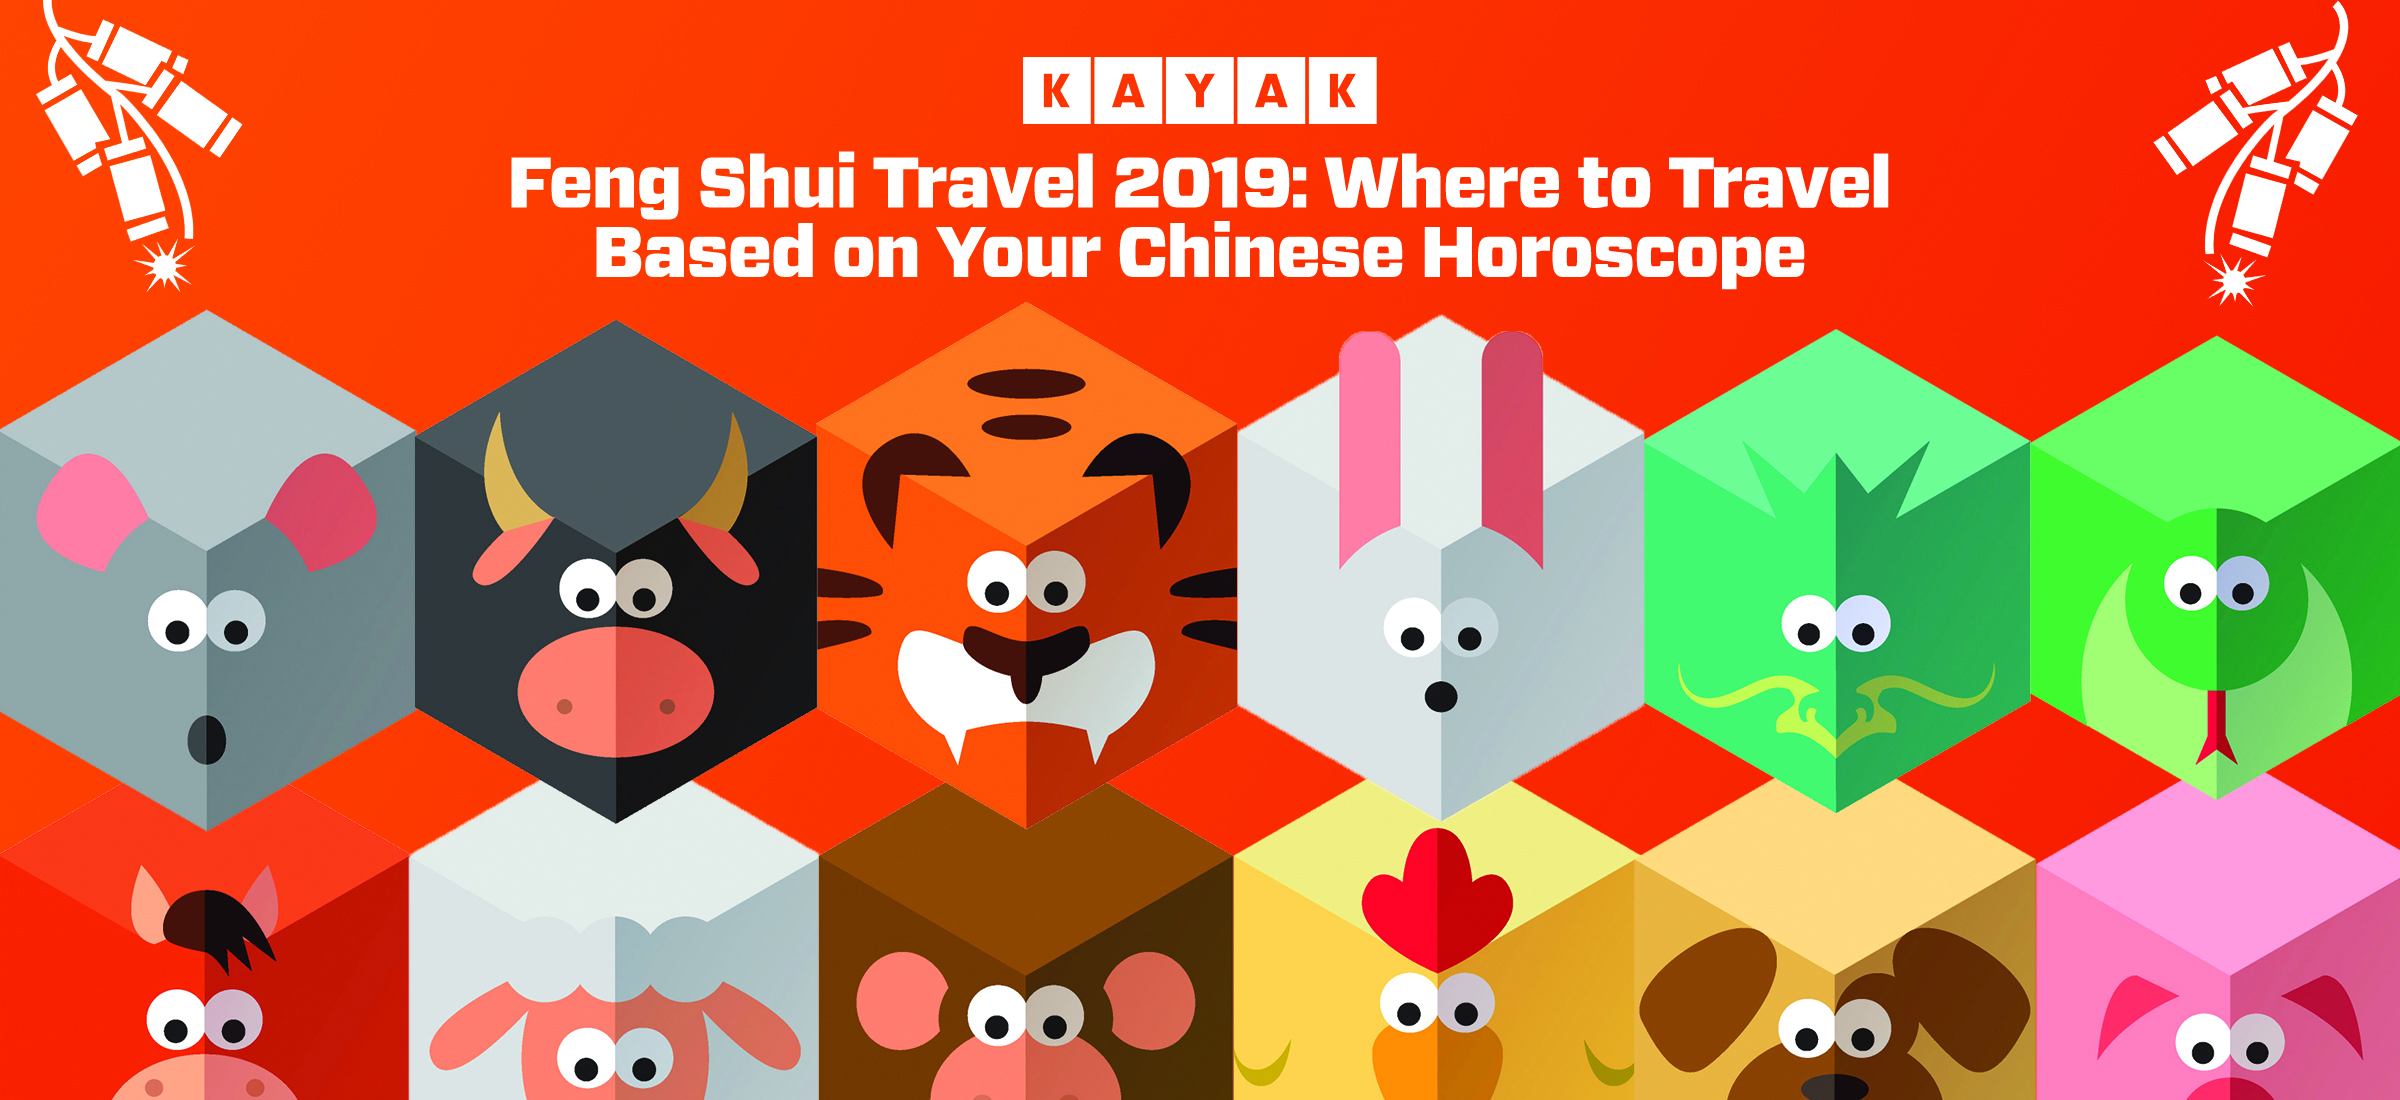 Feng Shui Travel Guide 2019: Where To Go Based On Your Chinese Horoscope